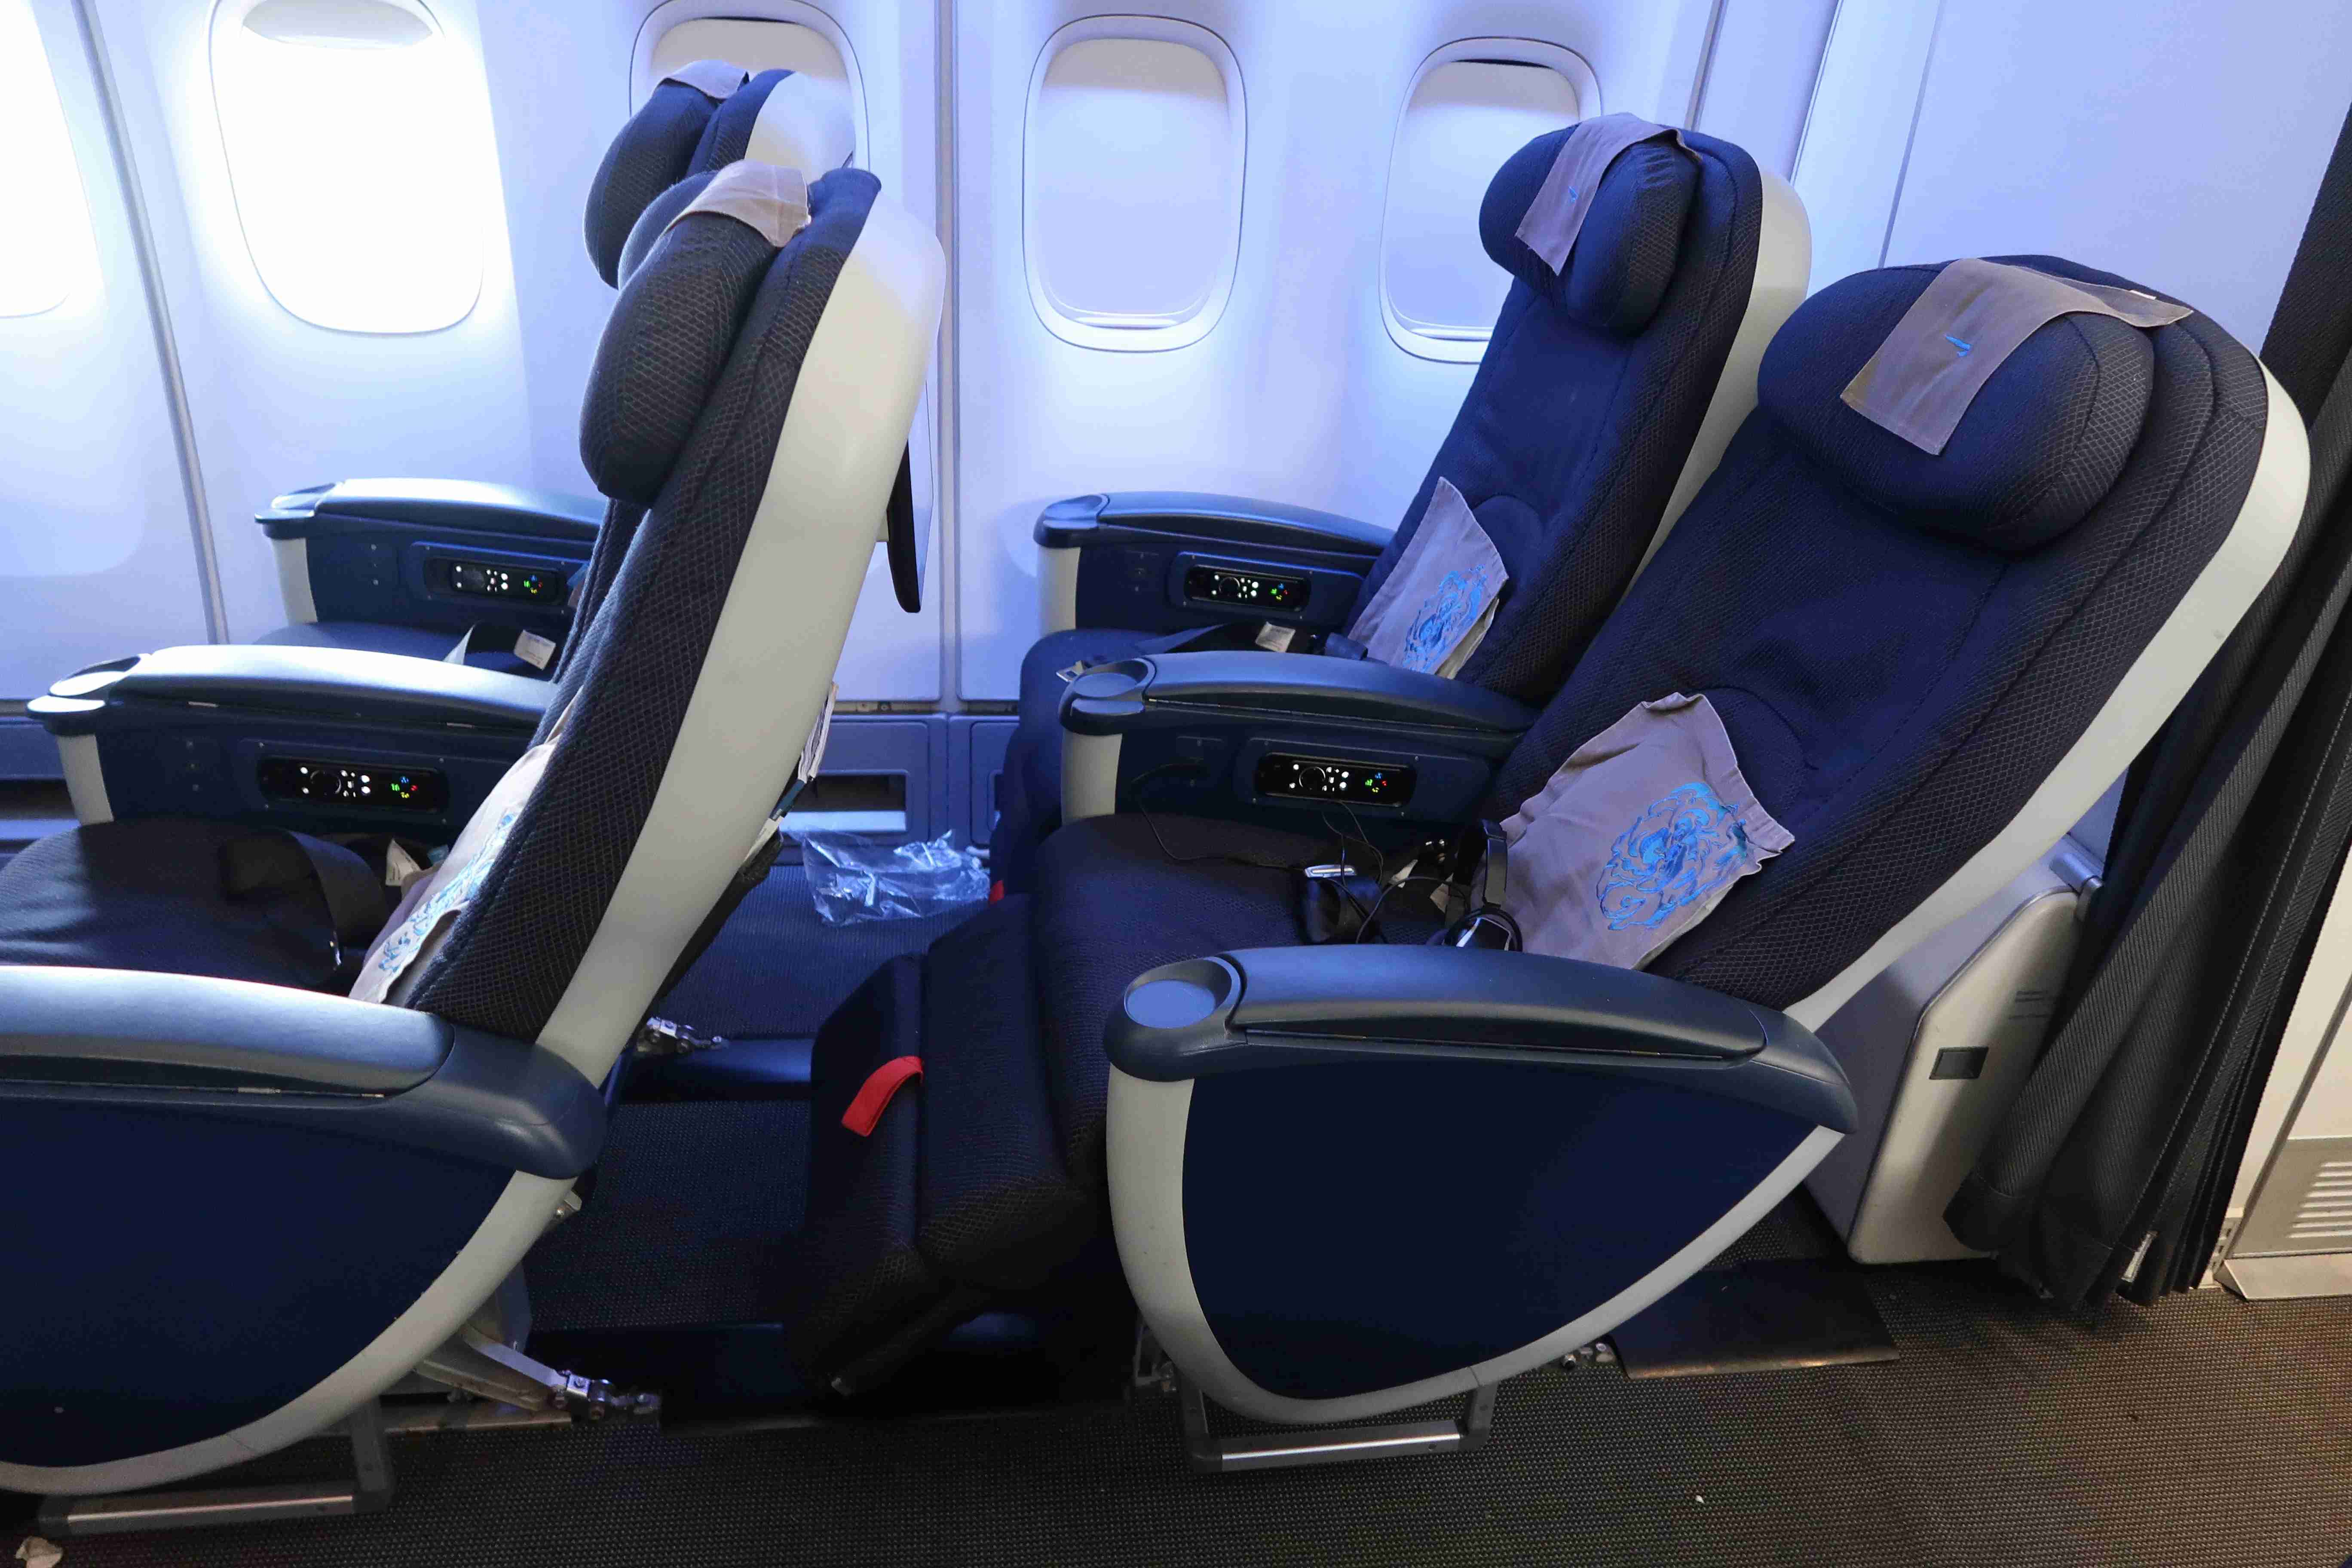 British Airways Premium Economy on its 747. IMage by JT Genter / The Points Guy.